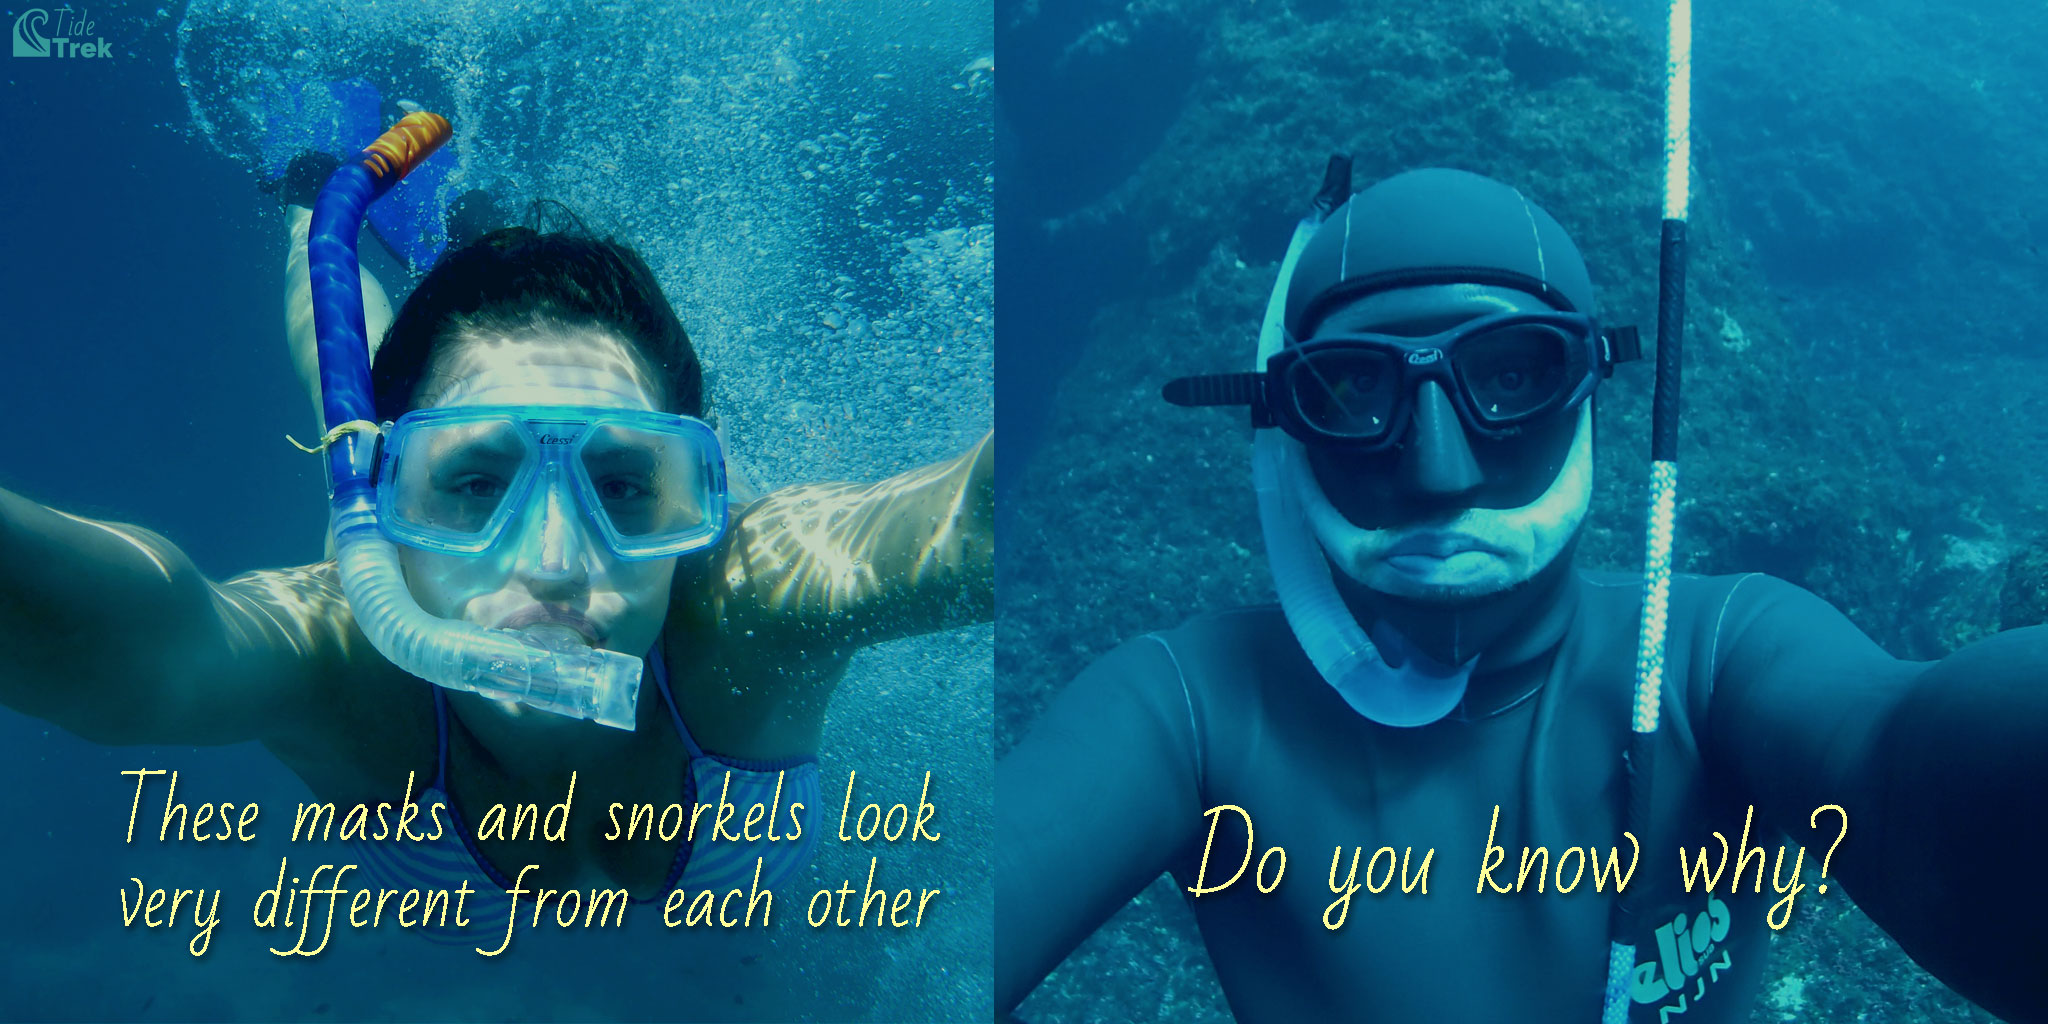 Photo of a woman wearing a typical mask and snorkel contrasted with a freediver wearing a low-volume mask and compact snorkel